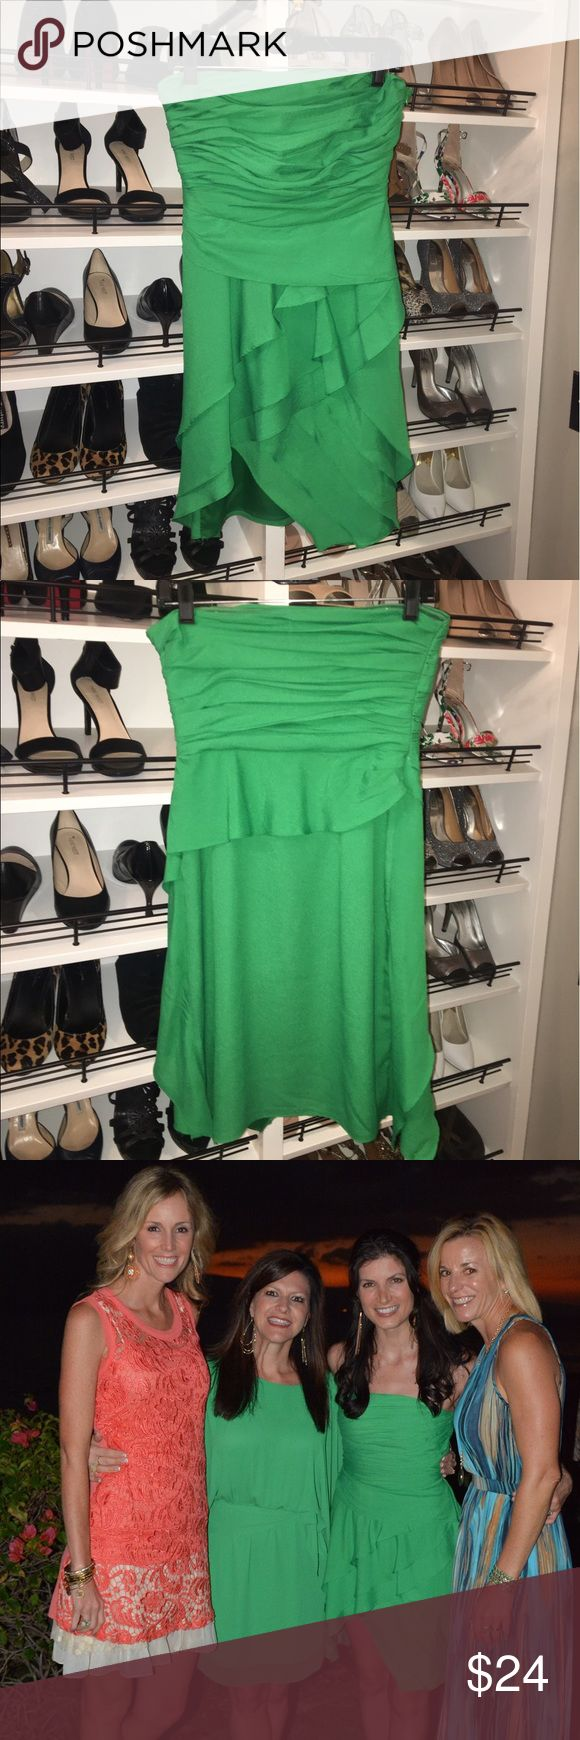 Kelly green dress Strapless Kelly Green dress; party/ cocktail dress; worn once MM Couture Dresses